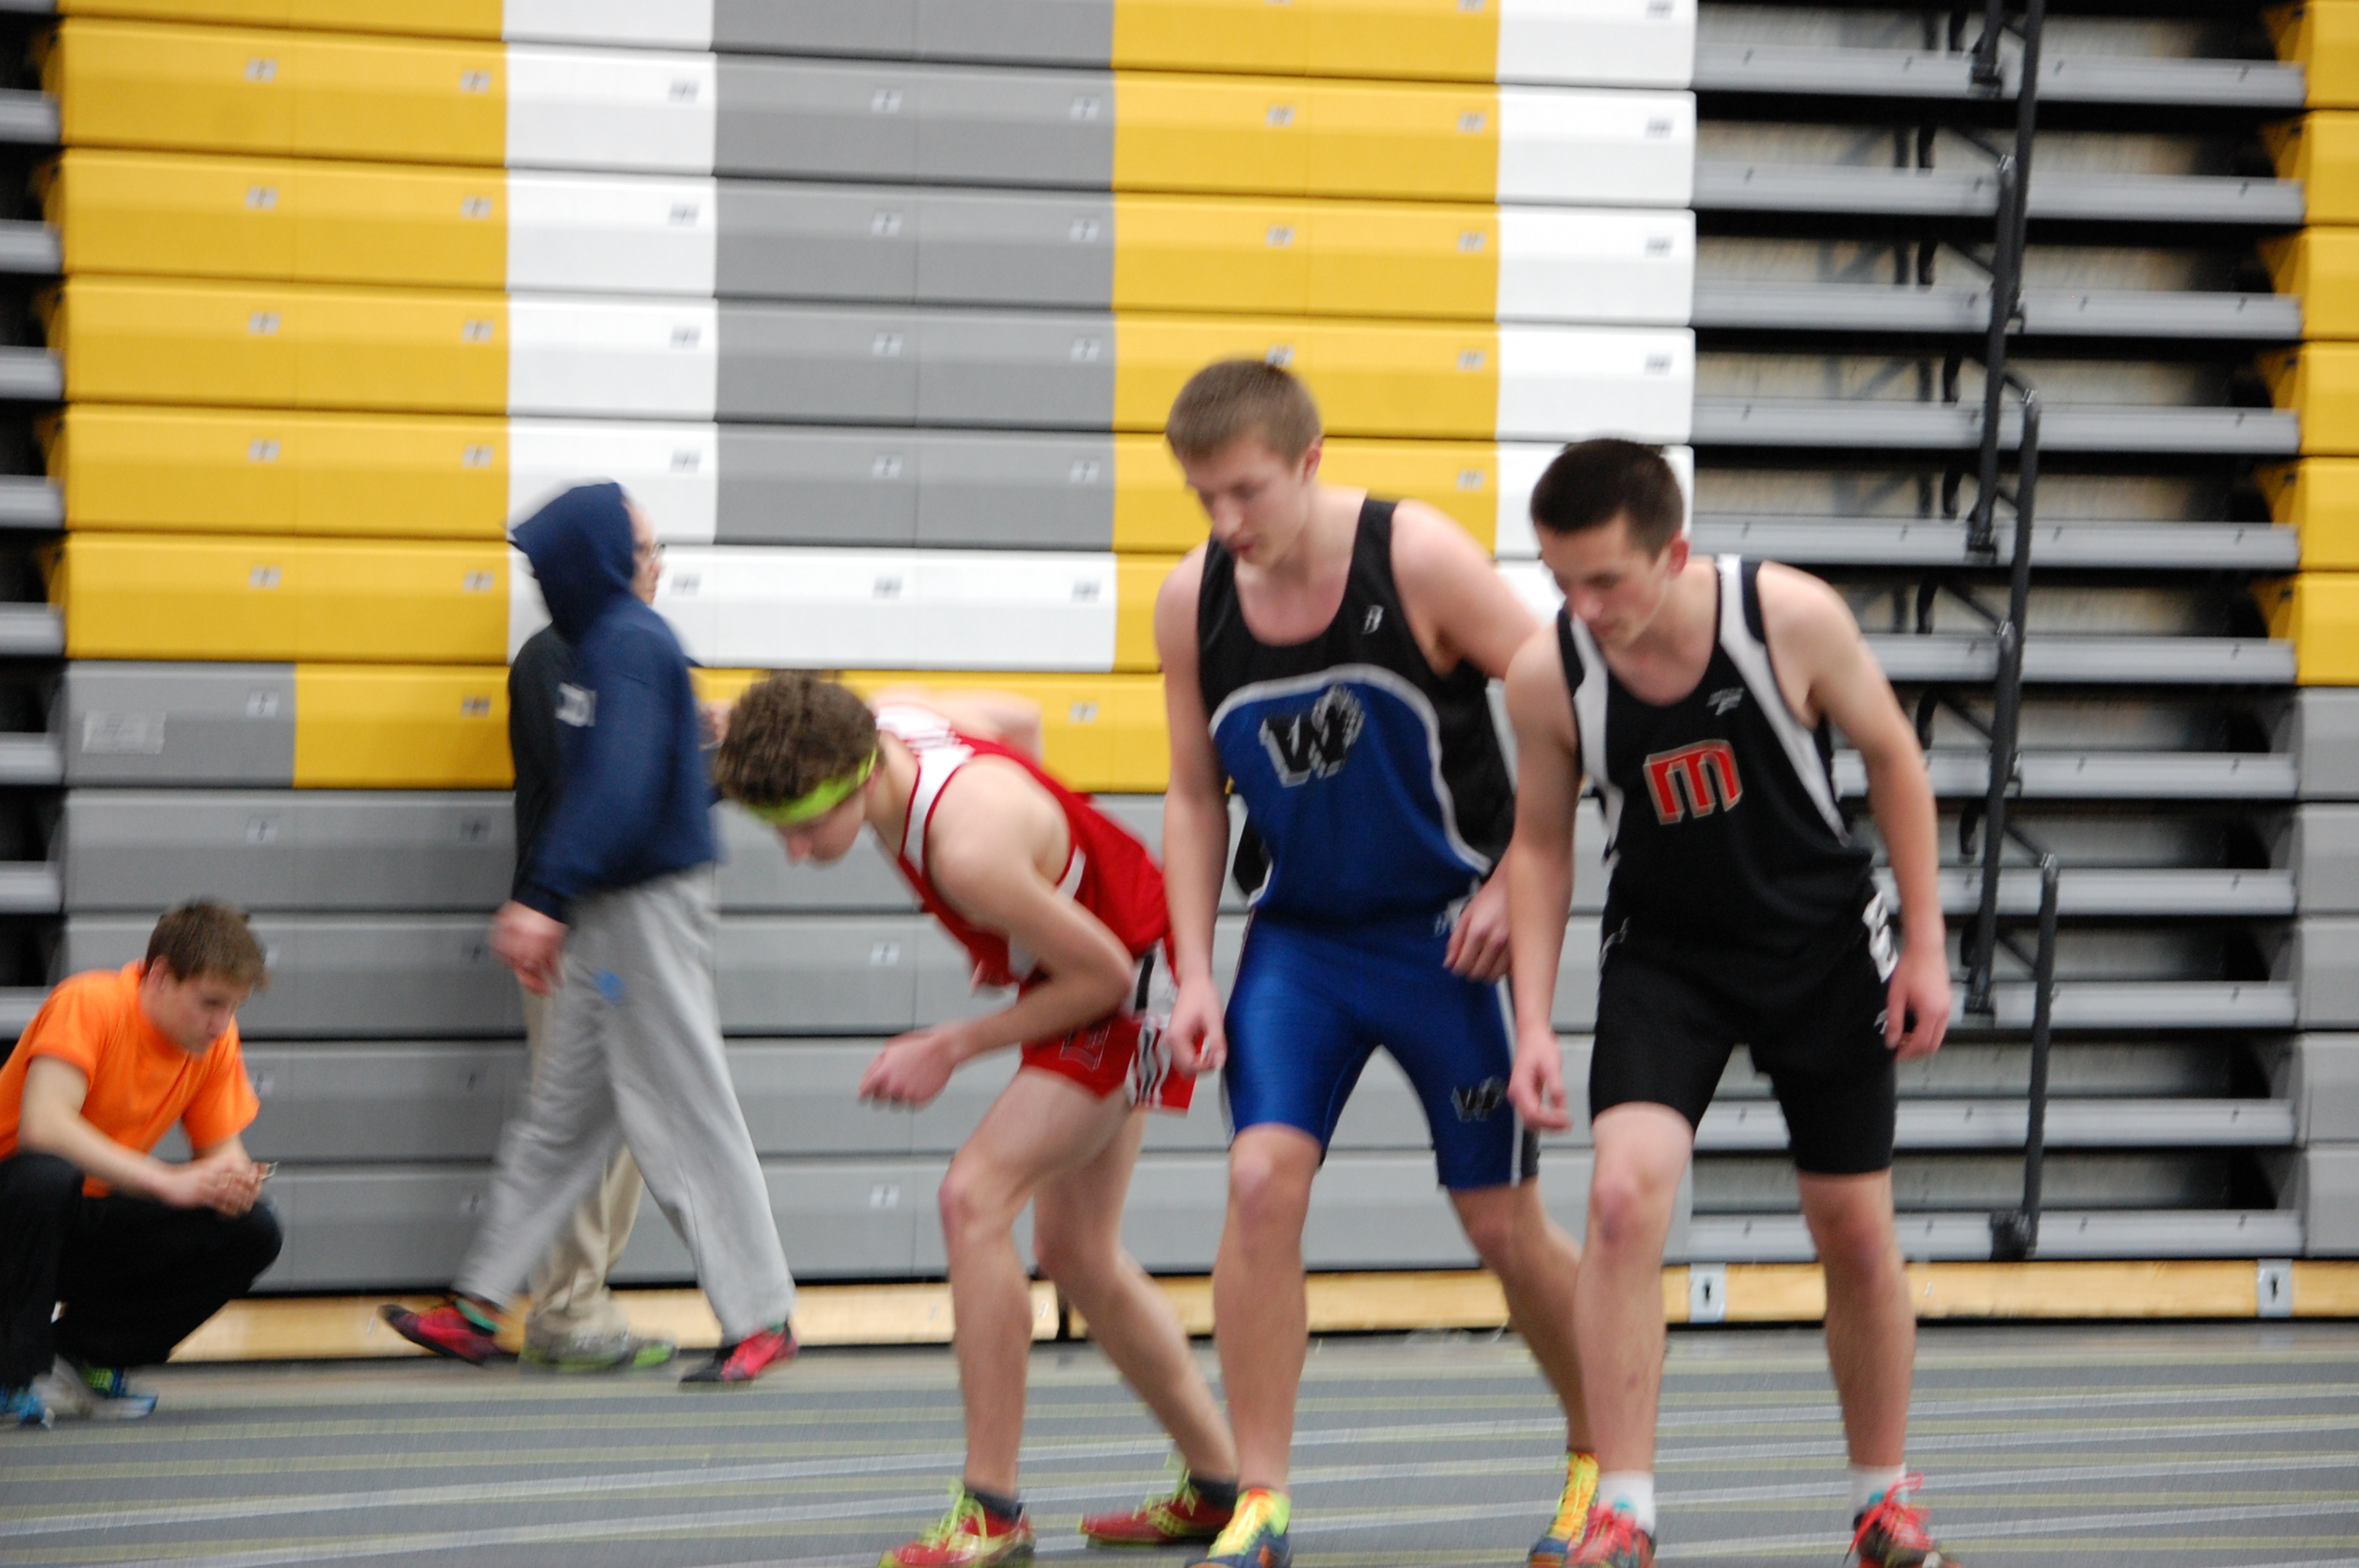 Junior Colin Bores stands at the ready for the 800 meter race.